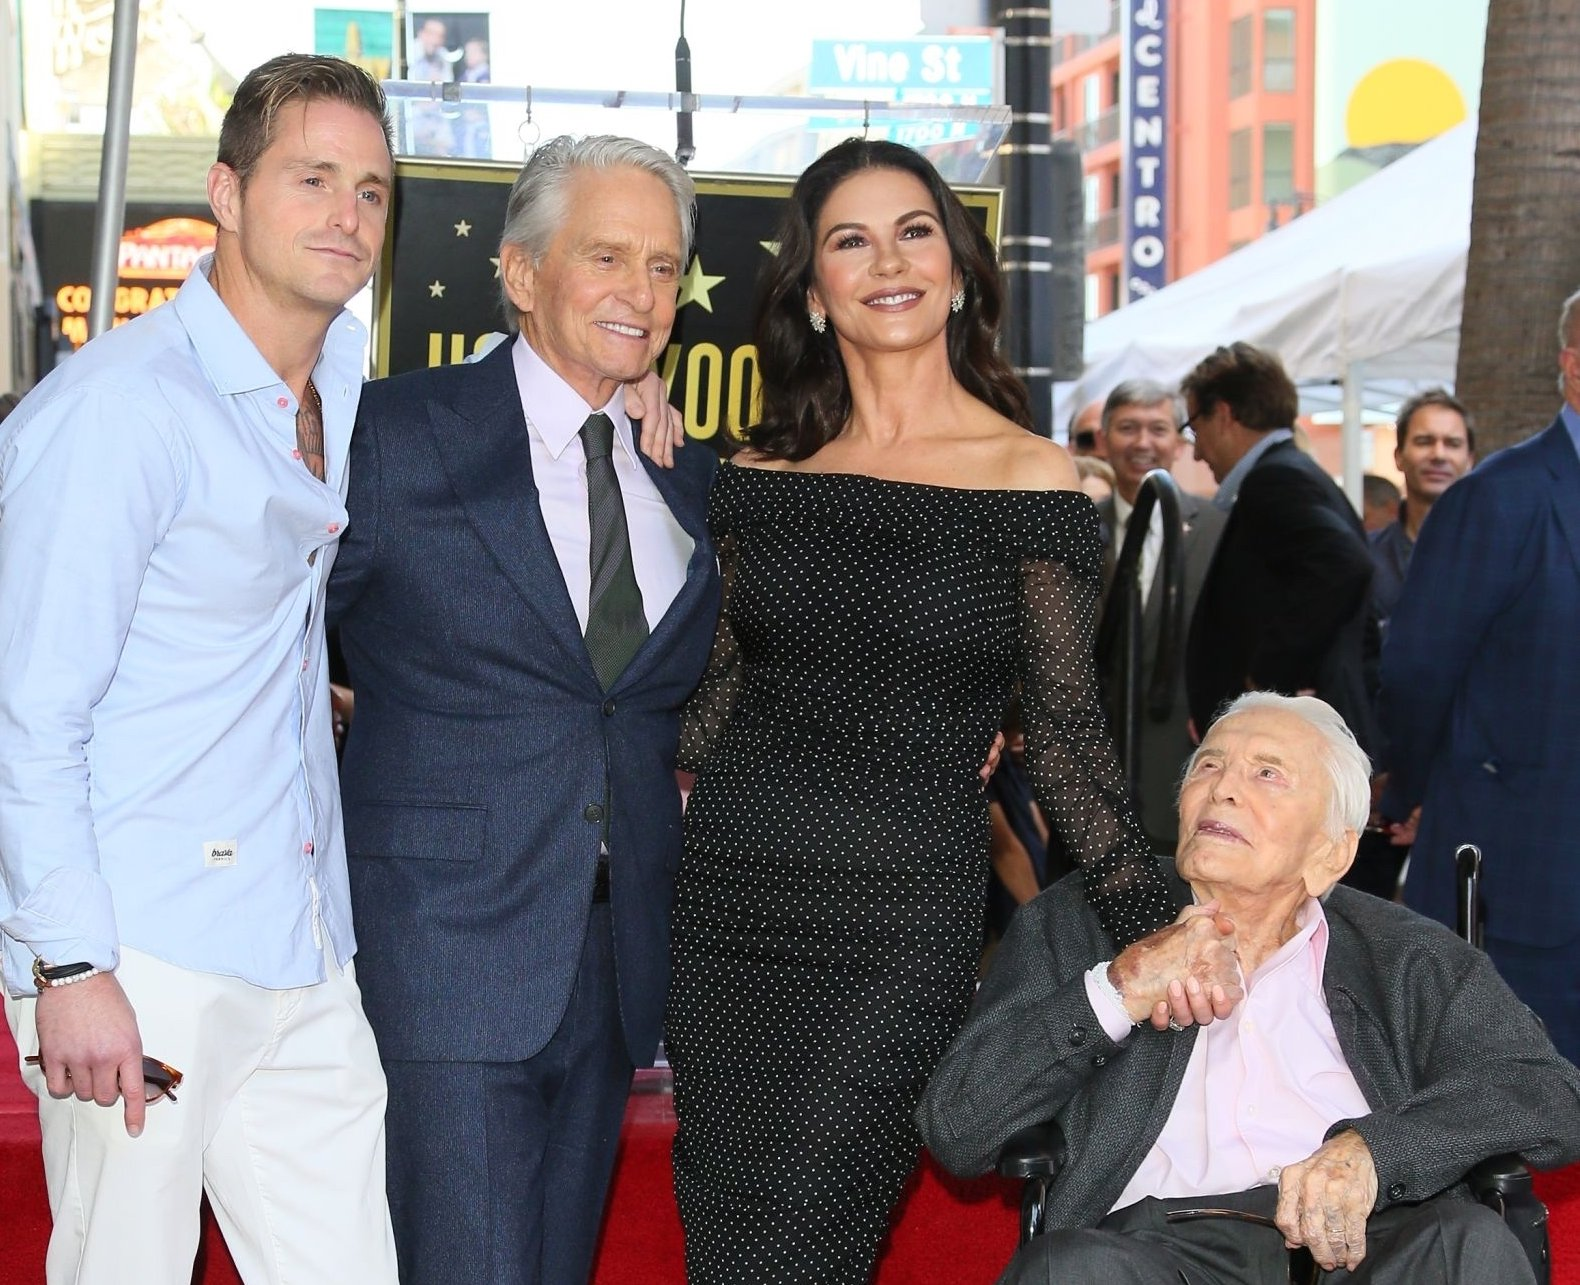 Image Credit: Getty Images/The Douglas family